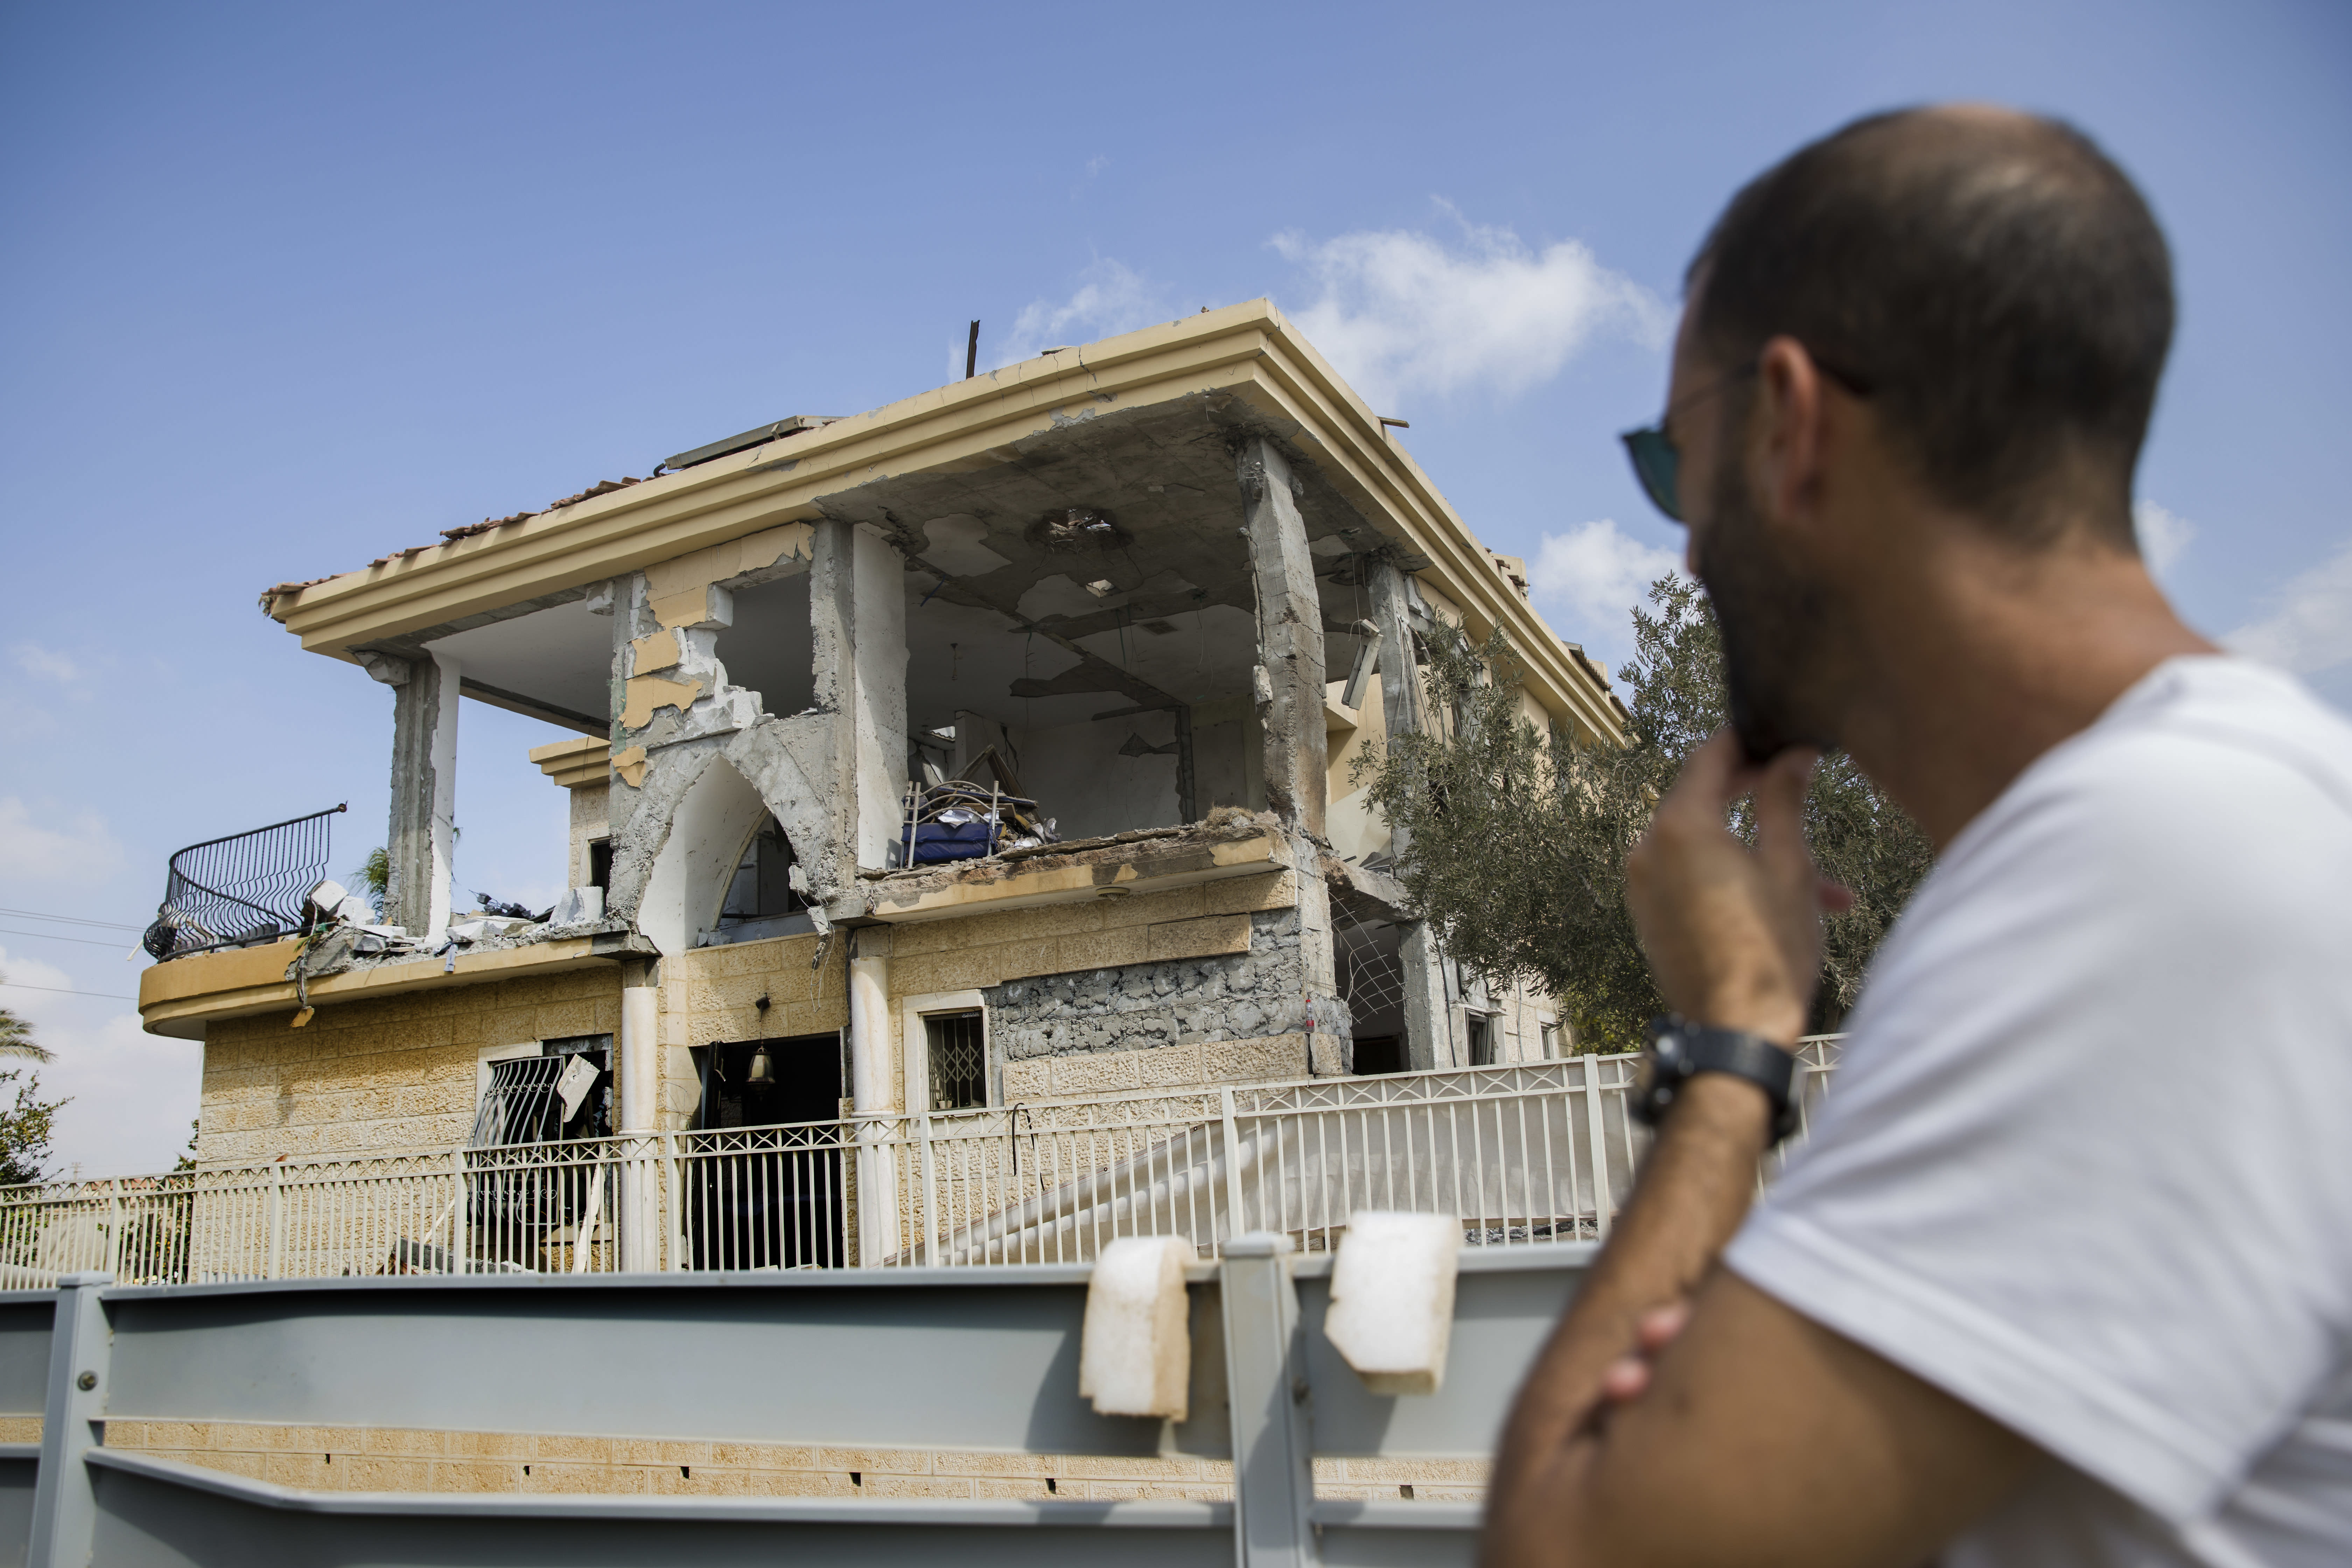 A man watches a house that was hit by a missile fired from Gaza Strip, in the city of Beersheba, southern Israel, Wednesday, Oct. 17, 2018. A medical service said a woman and her three children, whose home was struck, were being treated for shock after they fled to their shelter upon being awoken by warning sirens. (AP Photo/Tsafrir Abayov)